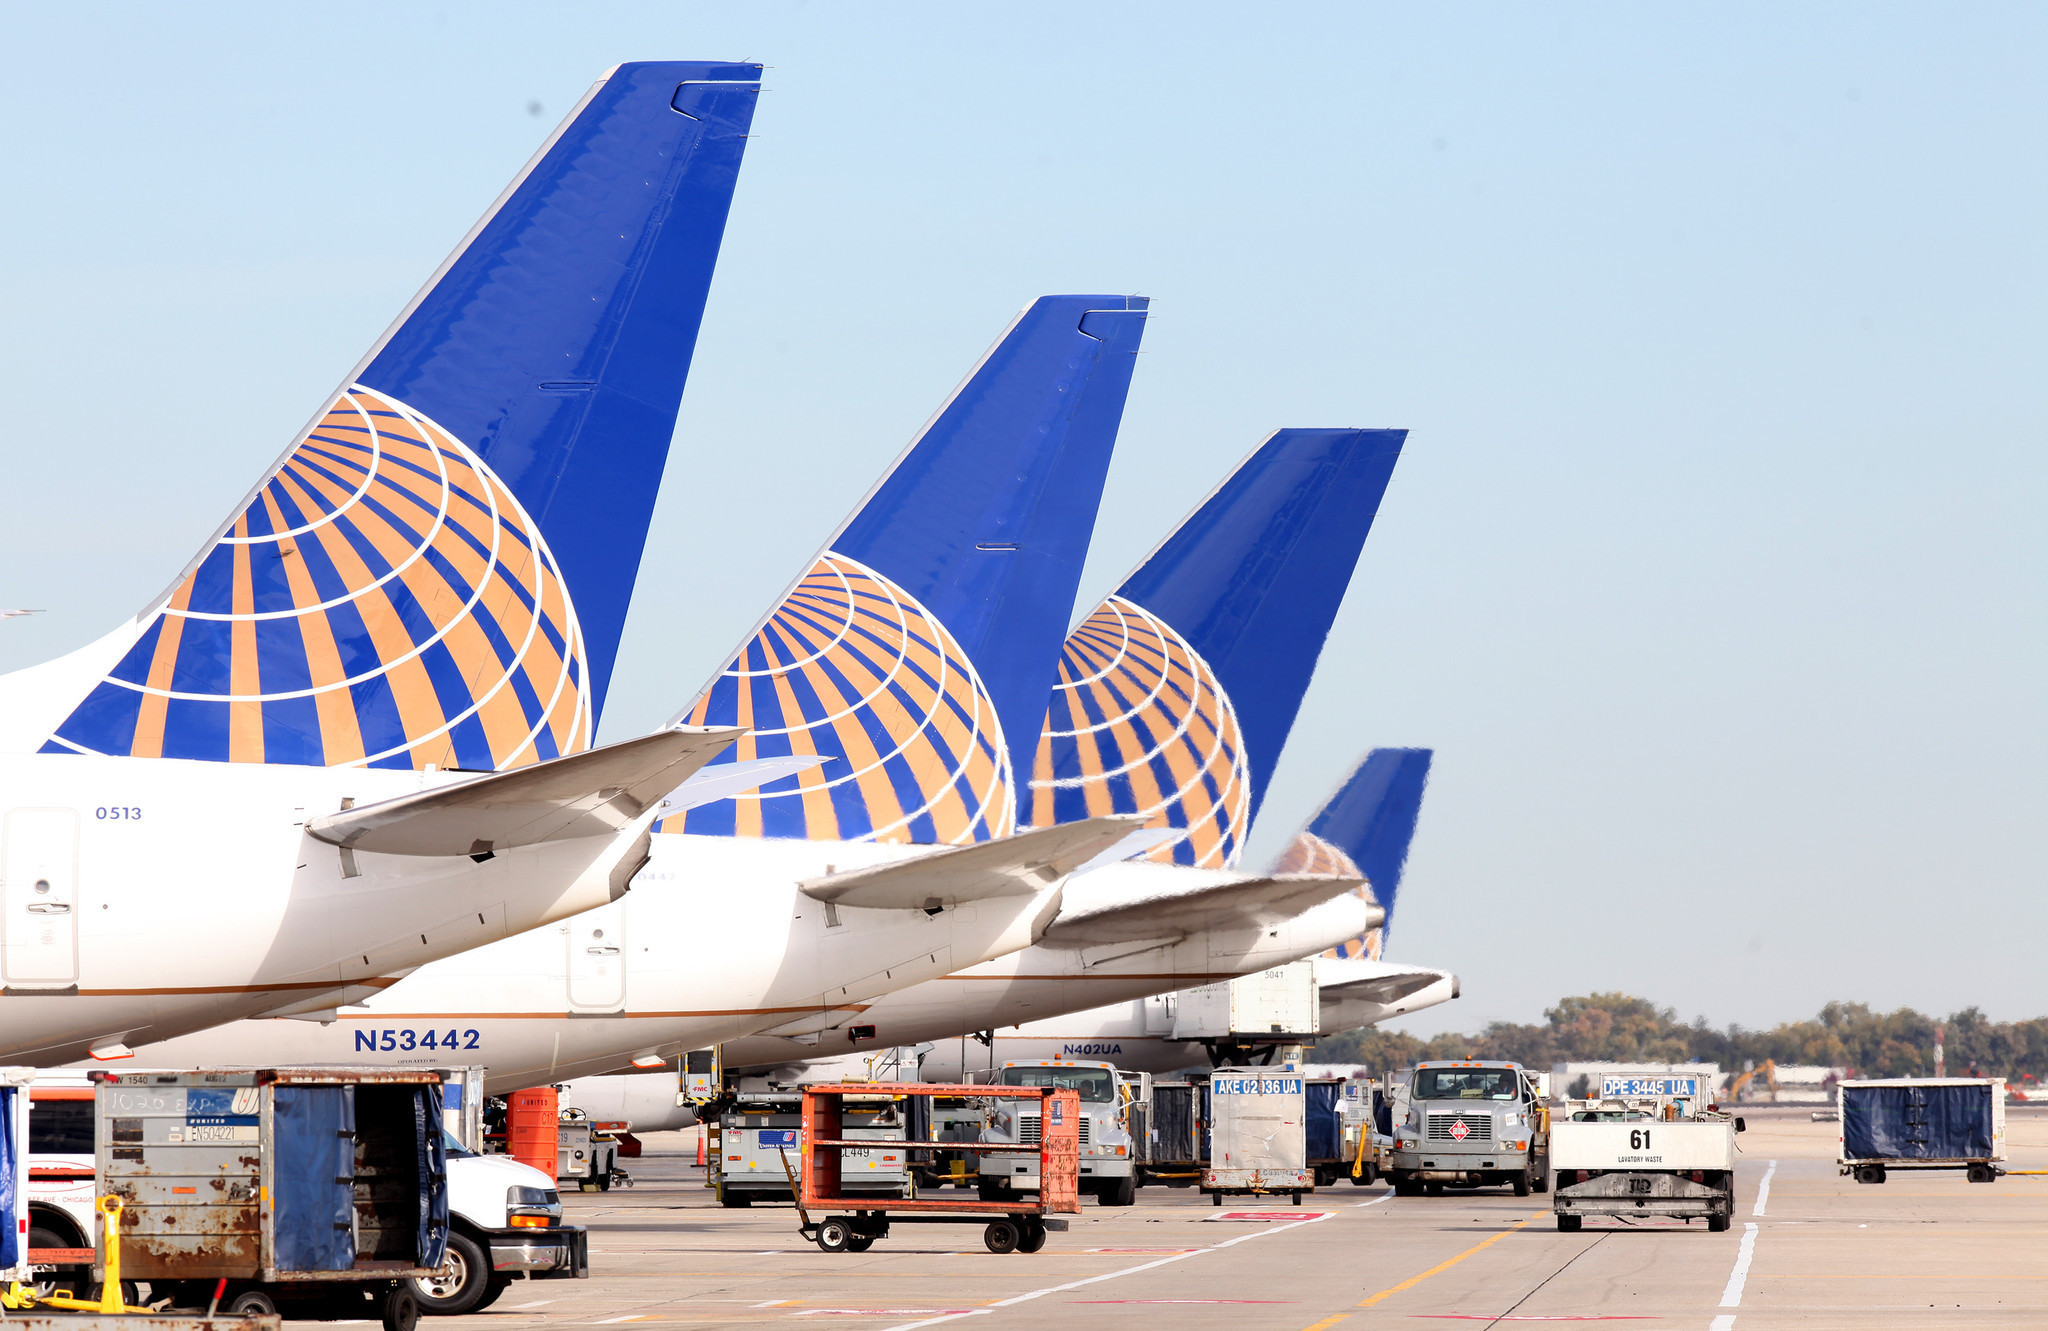 united ranks last among big airlines in increasingly important